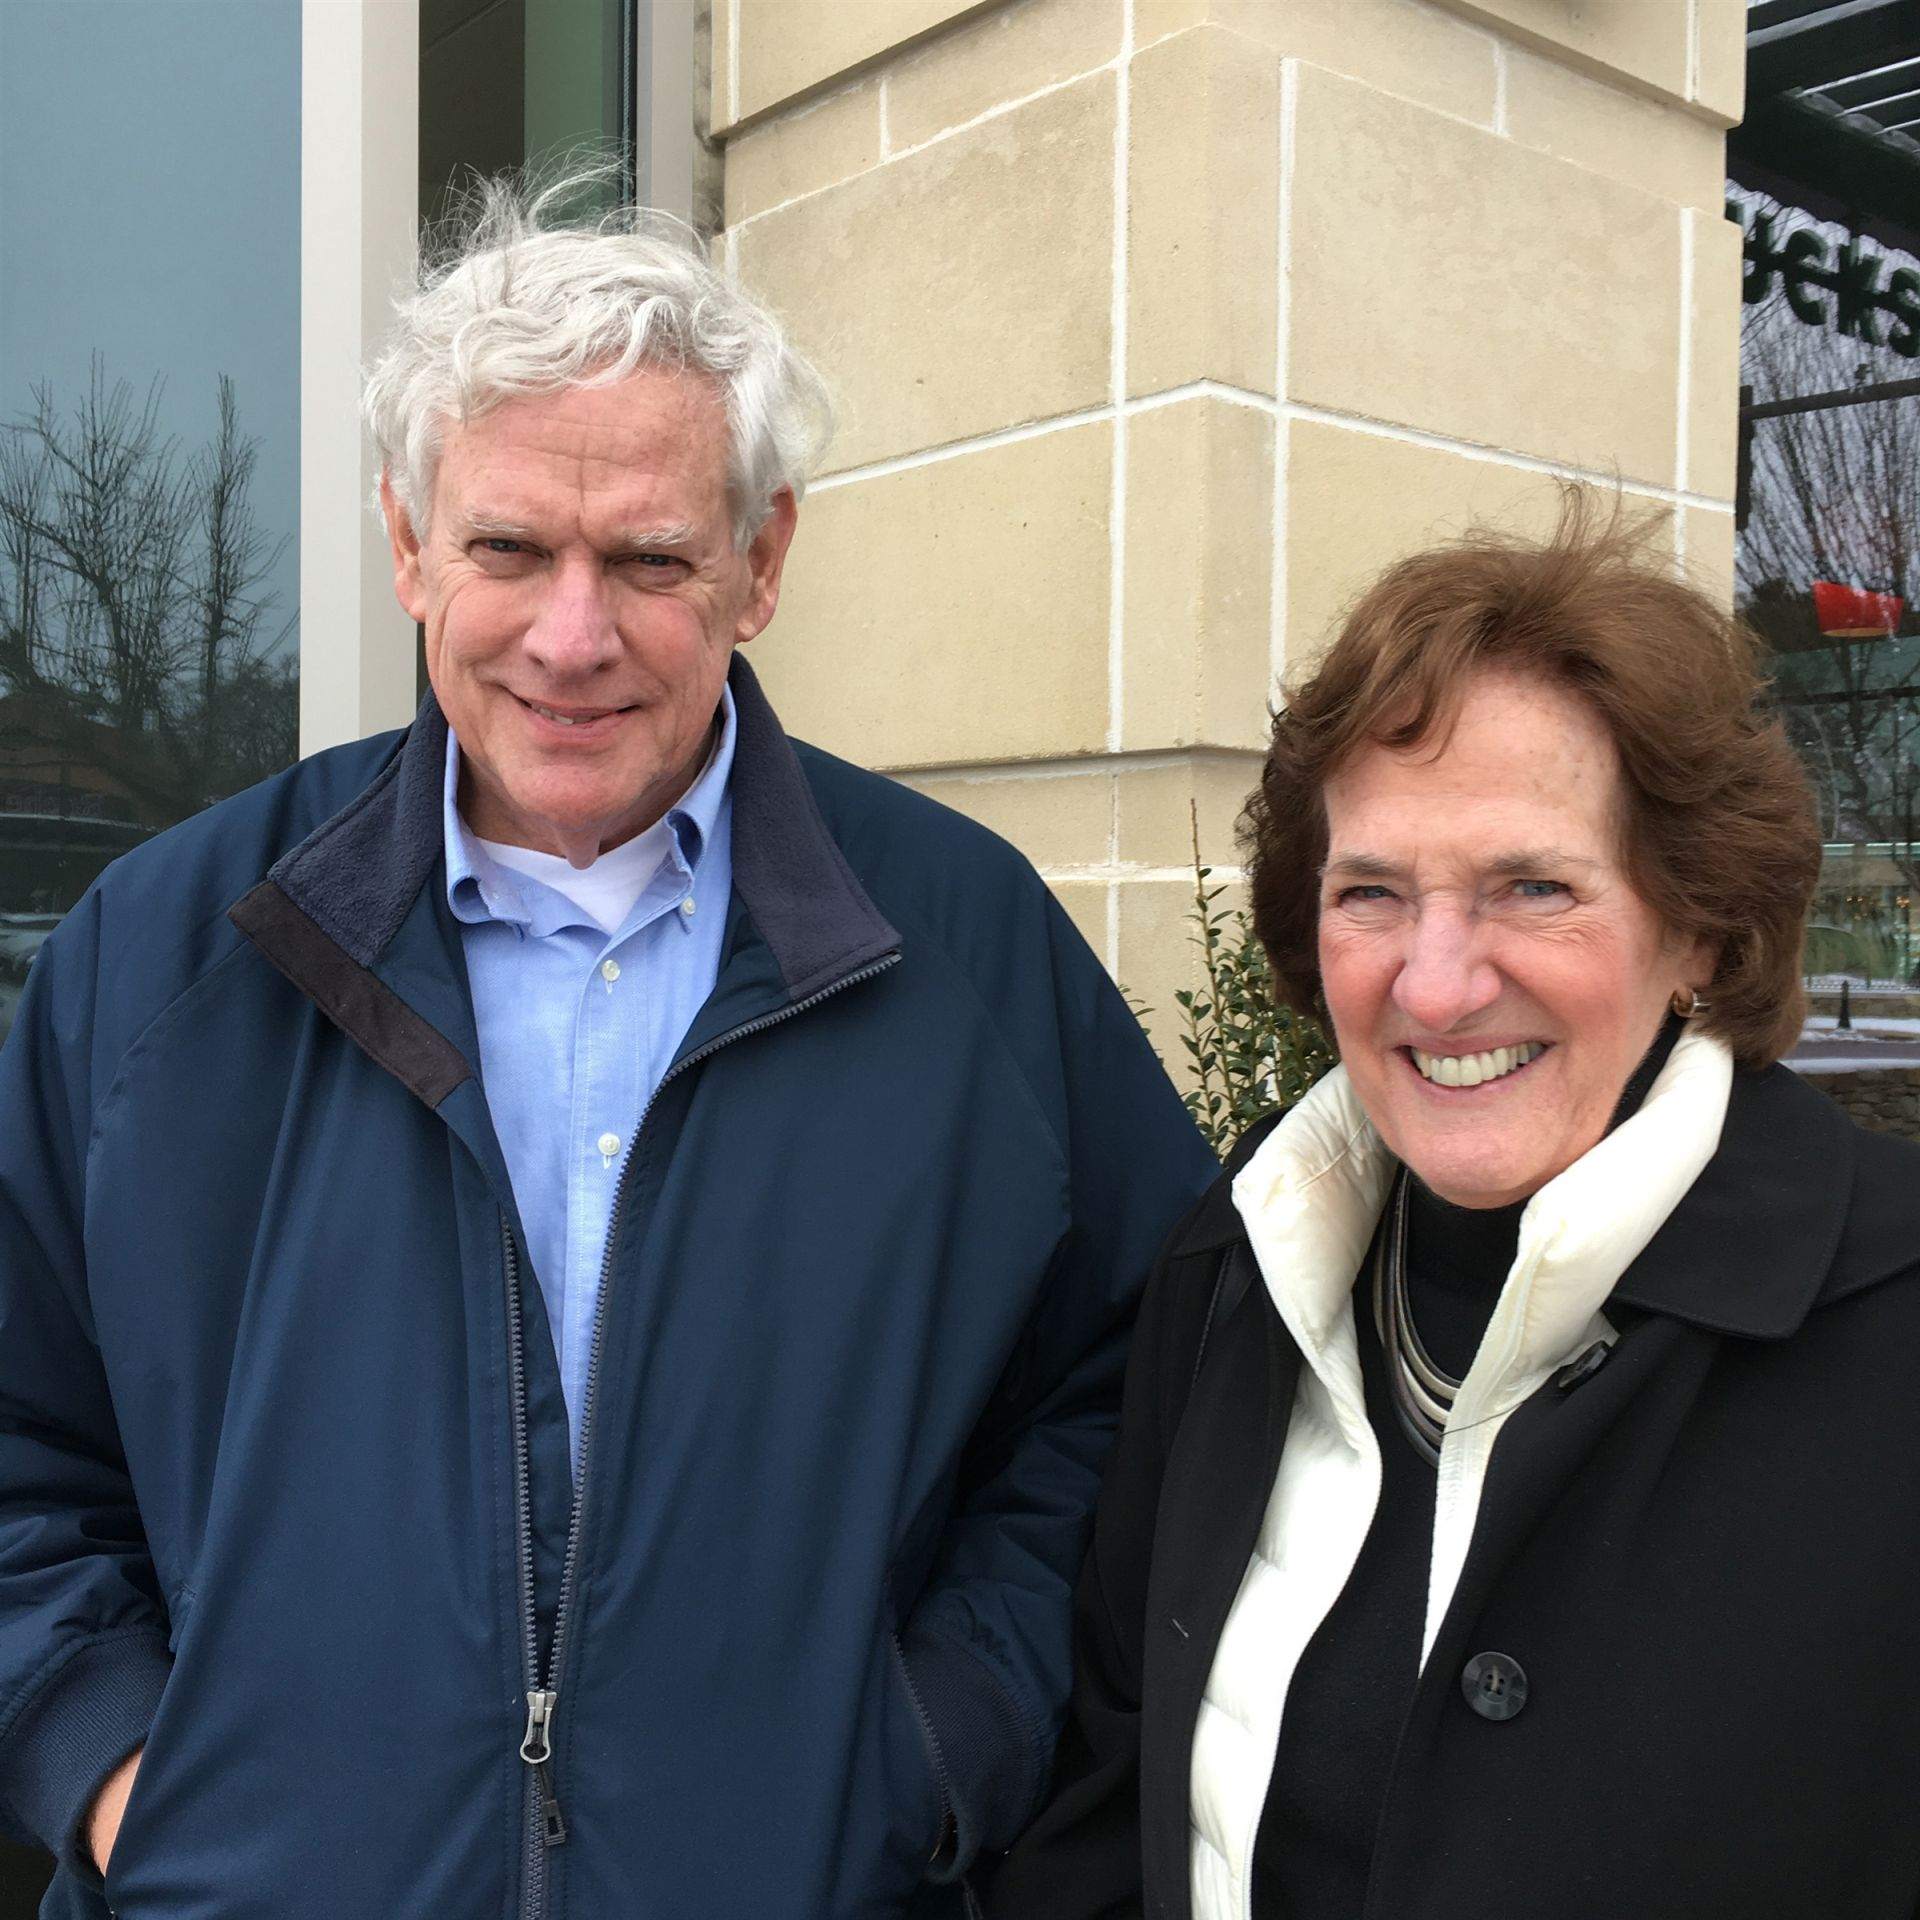 Jannie and Paul O'Conor '64 on January 29, 2018 in Wellesley, MA